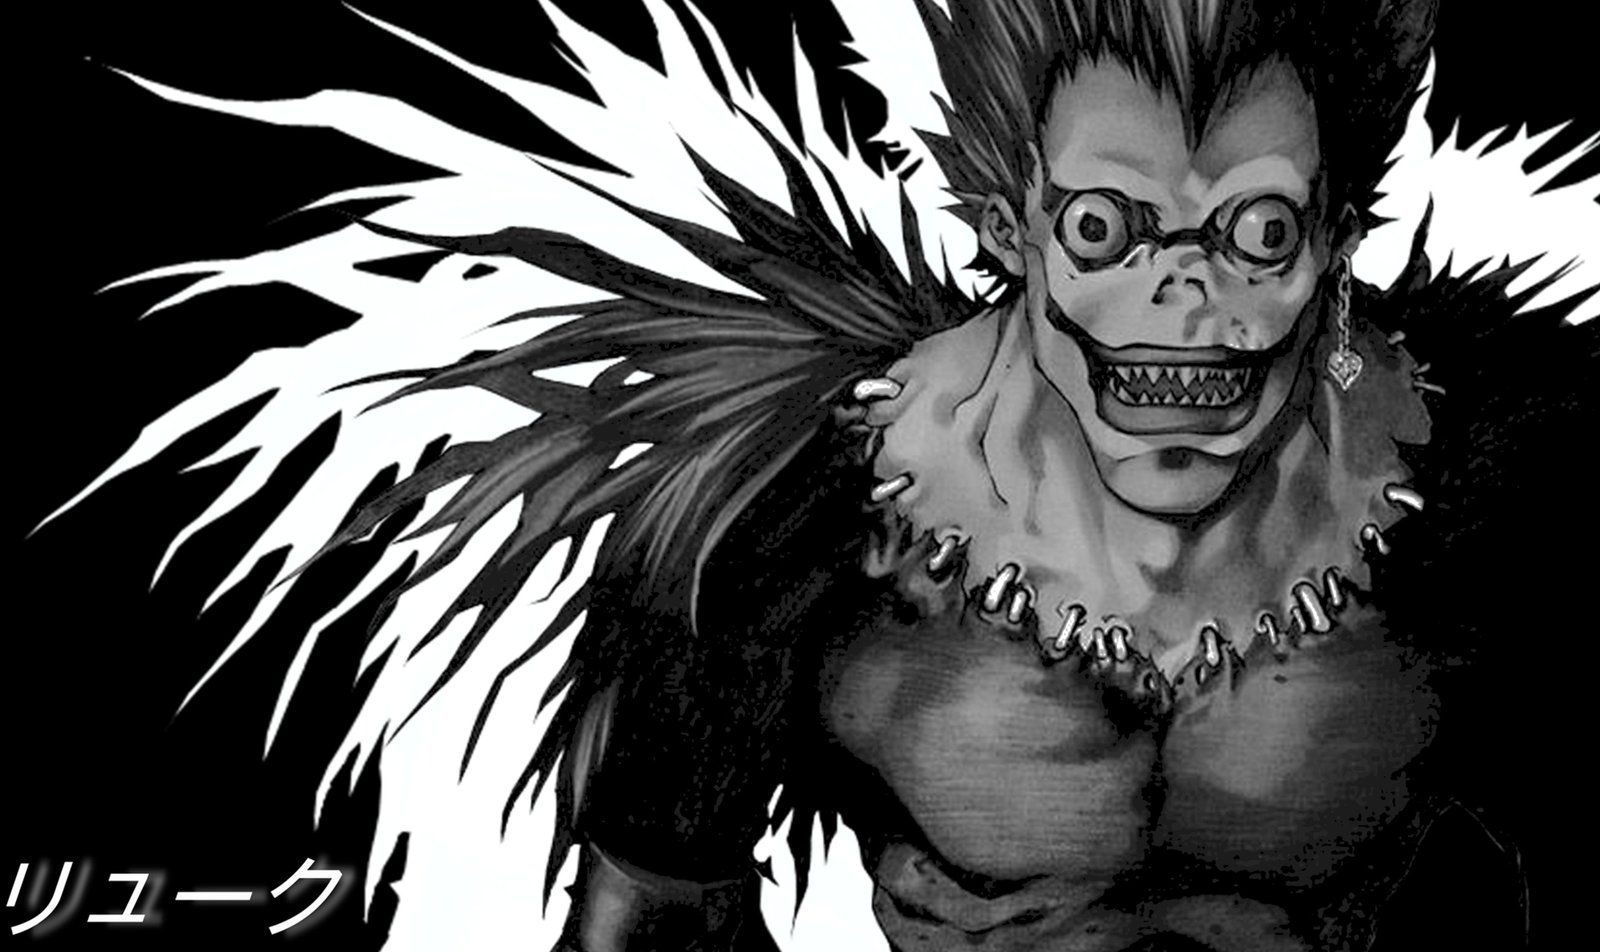 Pin by spetri on LineArt Death Note Death note, Good